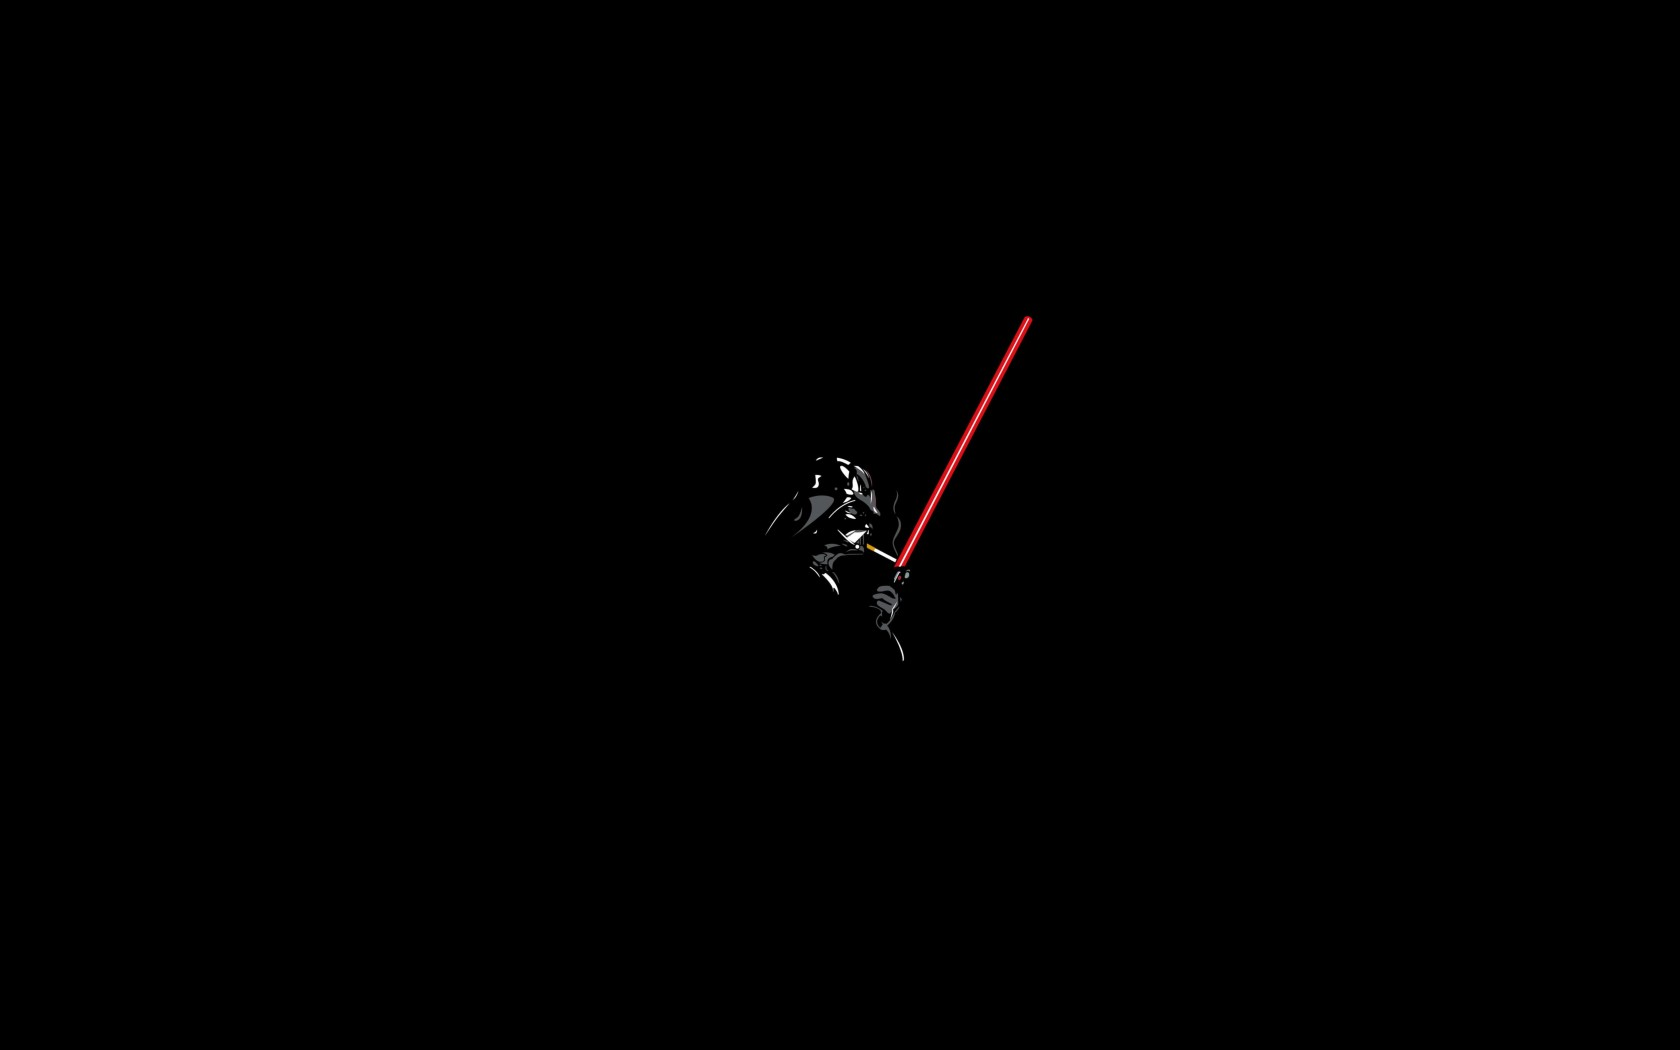 Darth Vader Lighting a Cigarette Wallpaper for Desktop 1680x1050